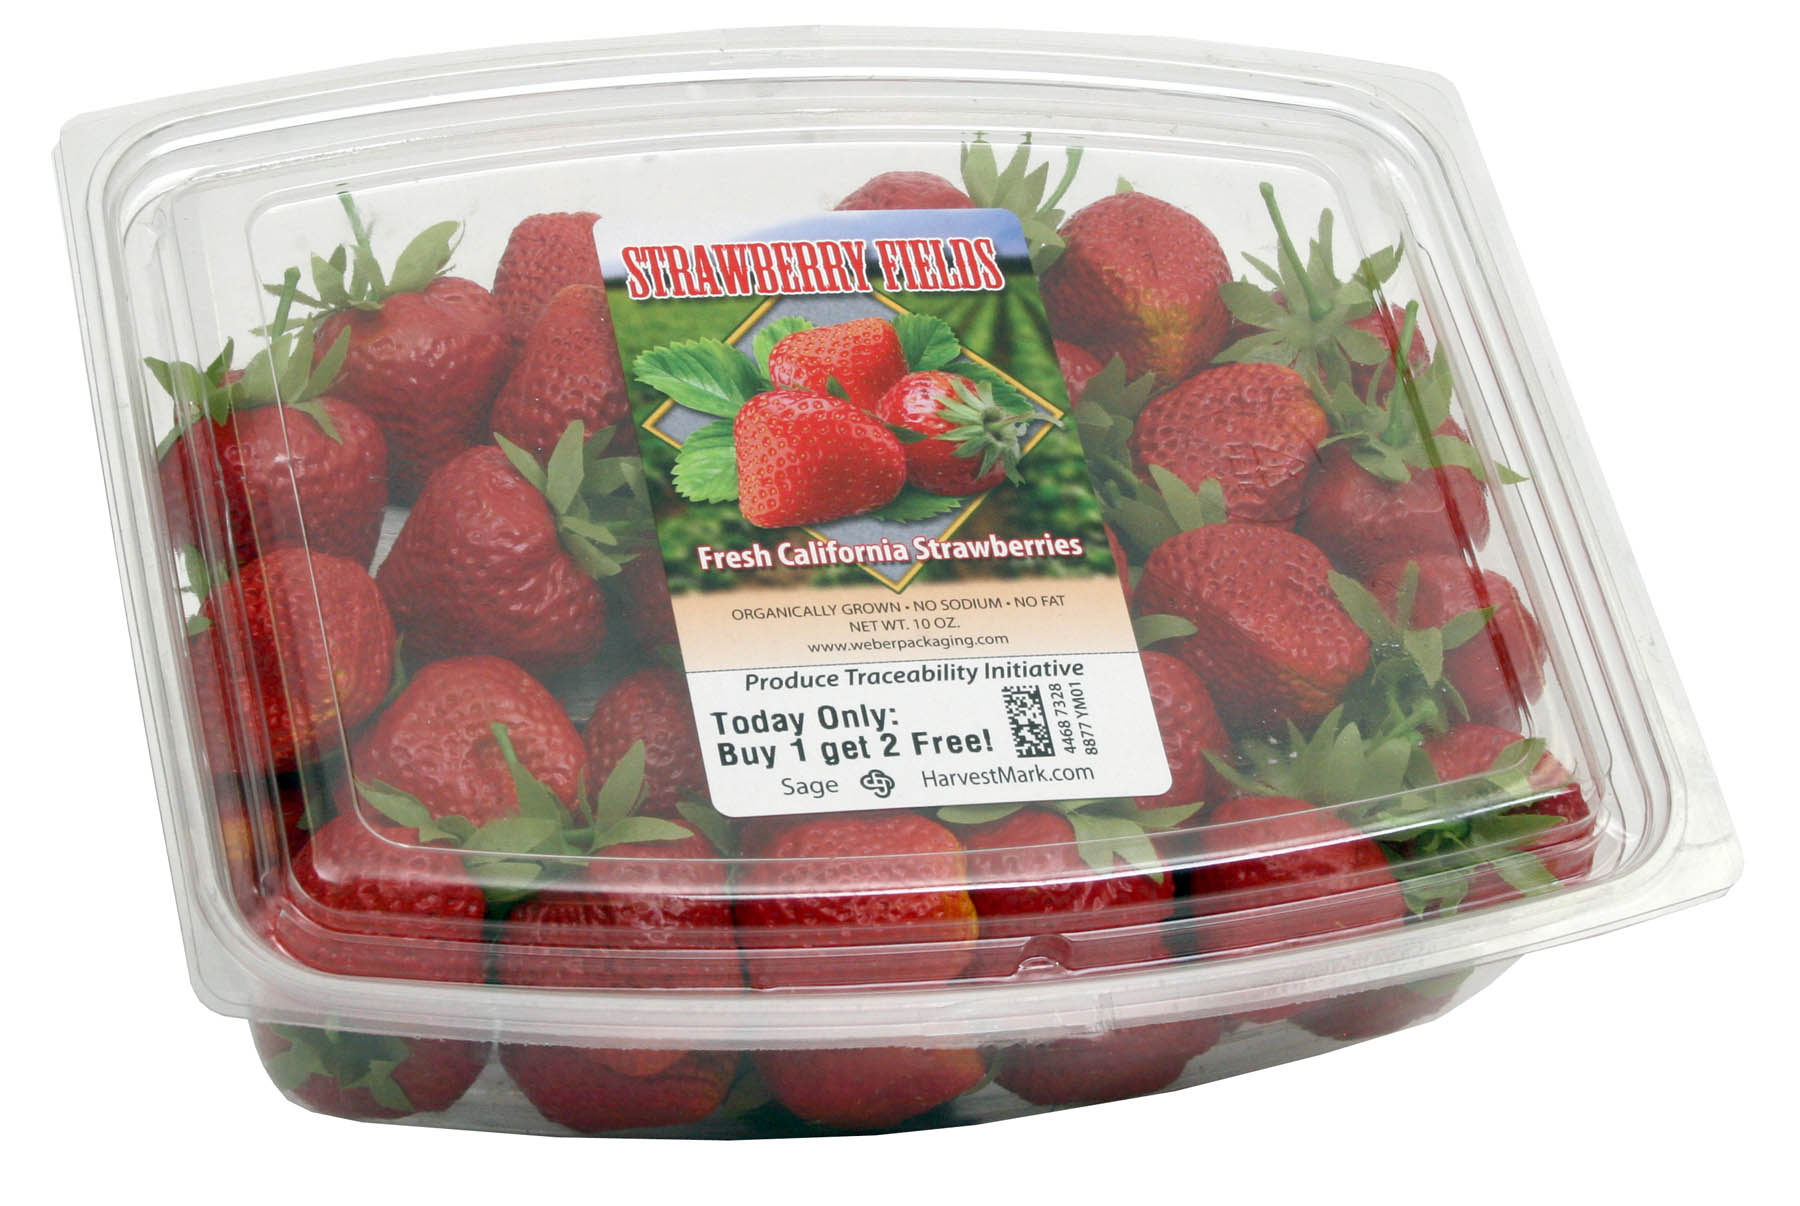 Strawberry_Fields_Labeled_Container